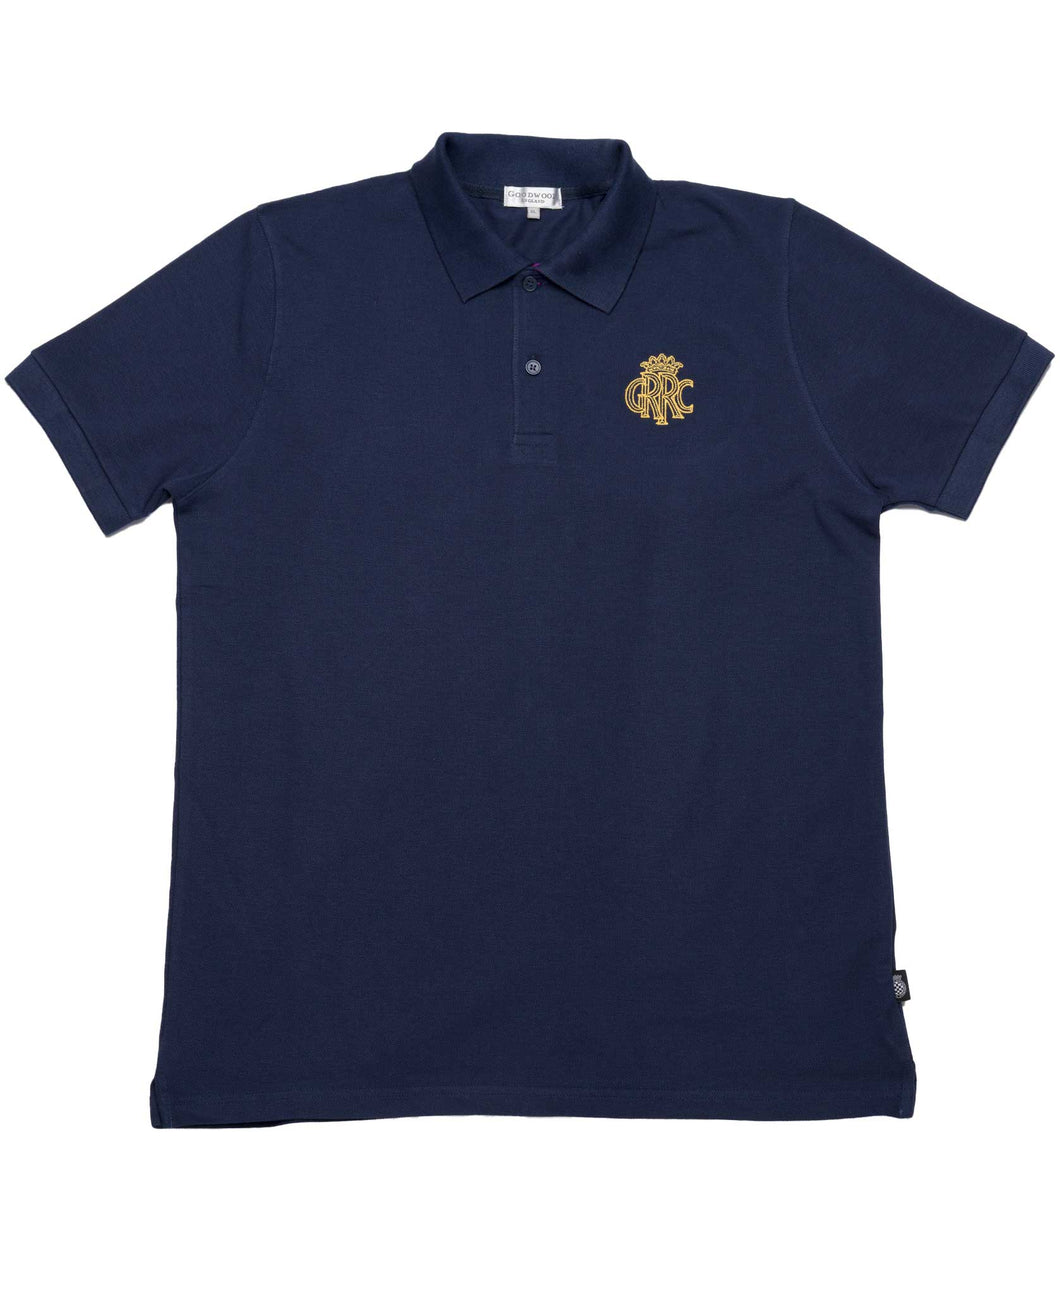 GRRC Members Navy & Purple Cotton Mens Polo Shirt